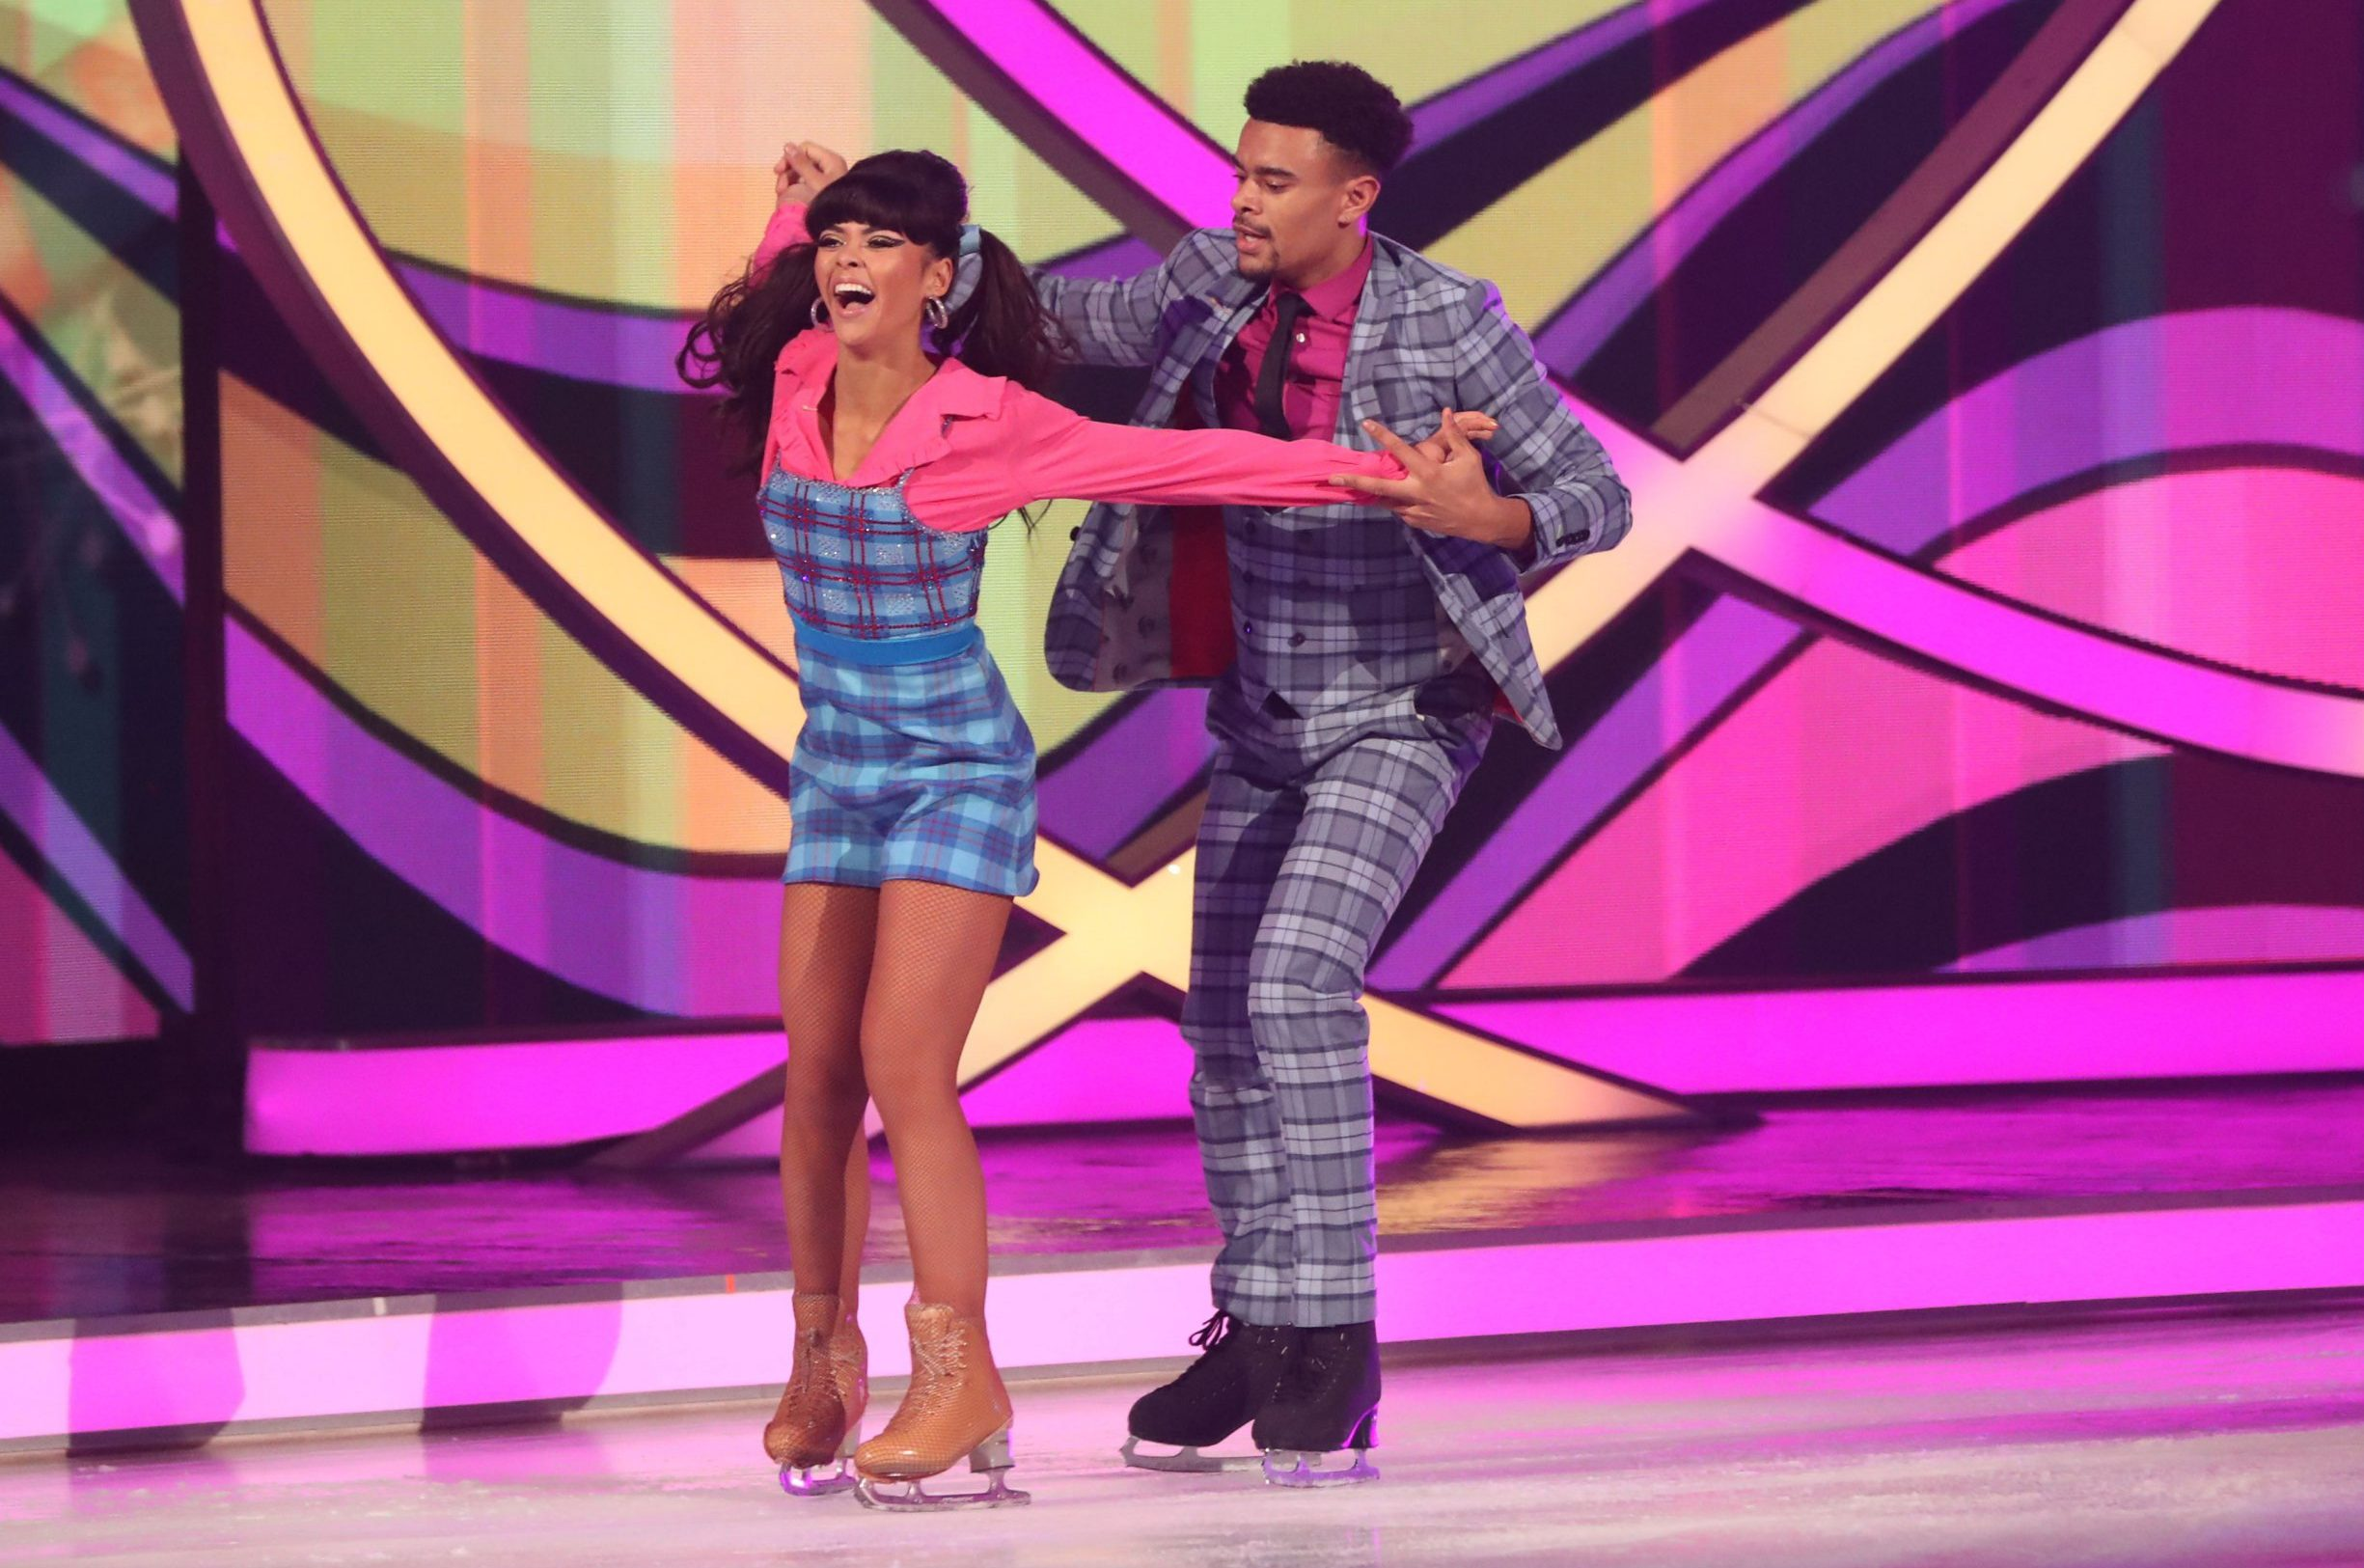 How old is Vanessa Bauer and who did she partner before Wes Nelson on Dancing On Ice?